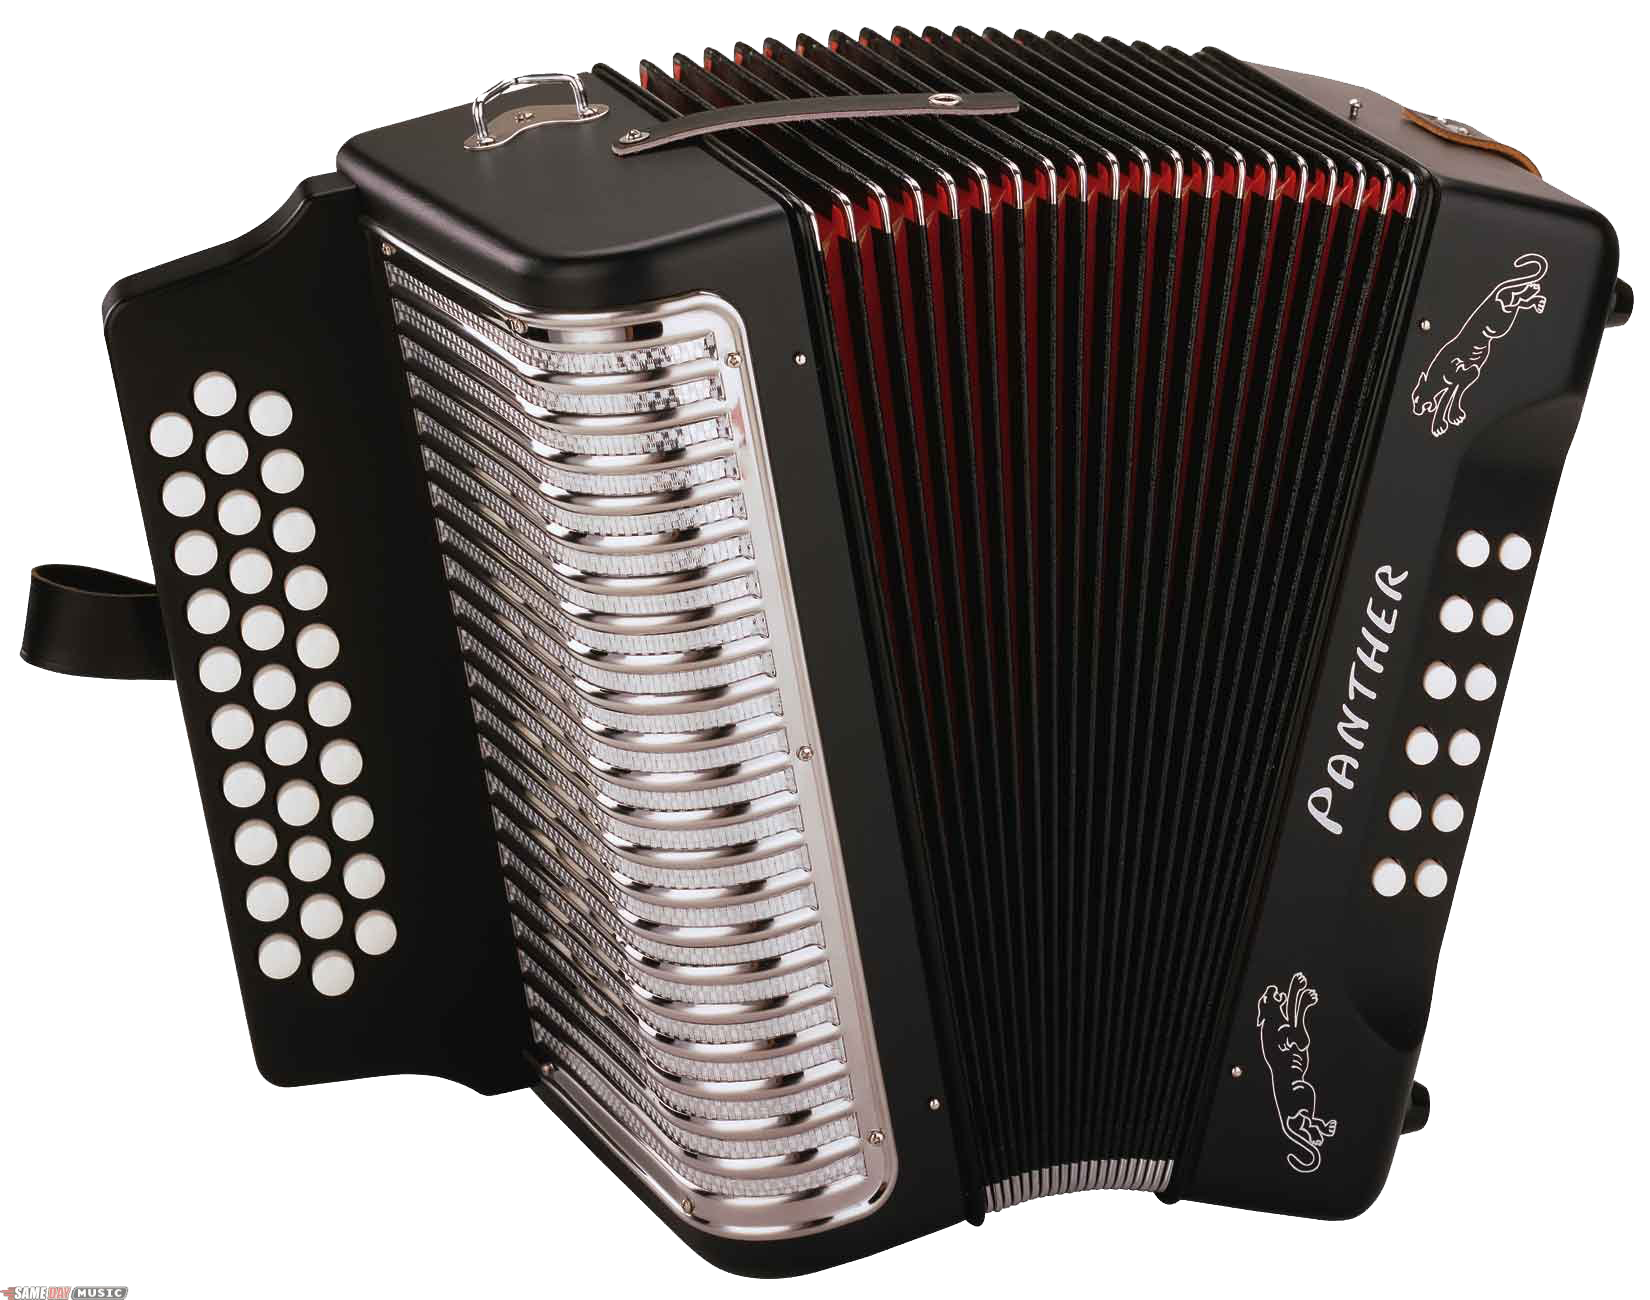 Accordion HD PNG